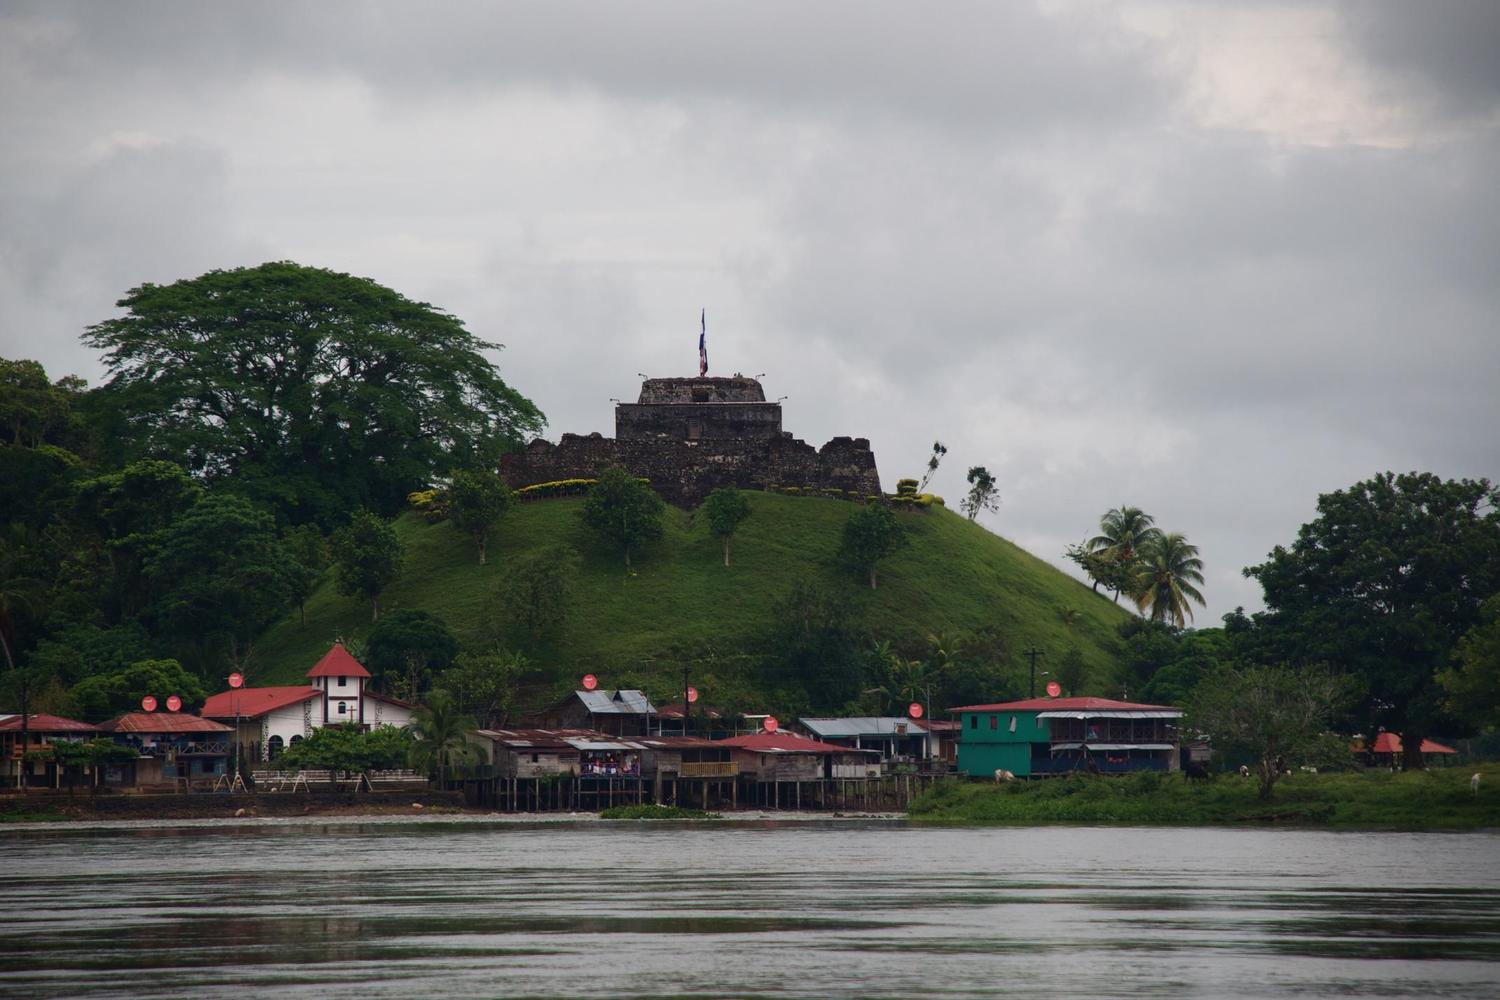 El Castillo on the Rio San Juan, built to deter Sir Francis Drake from piracy